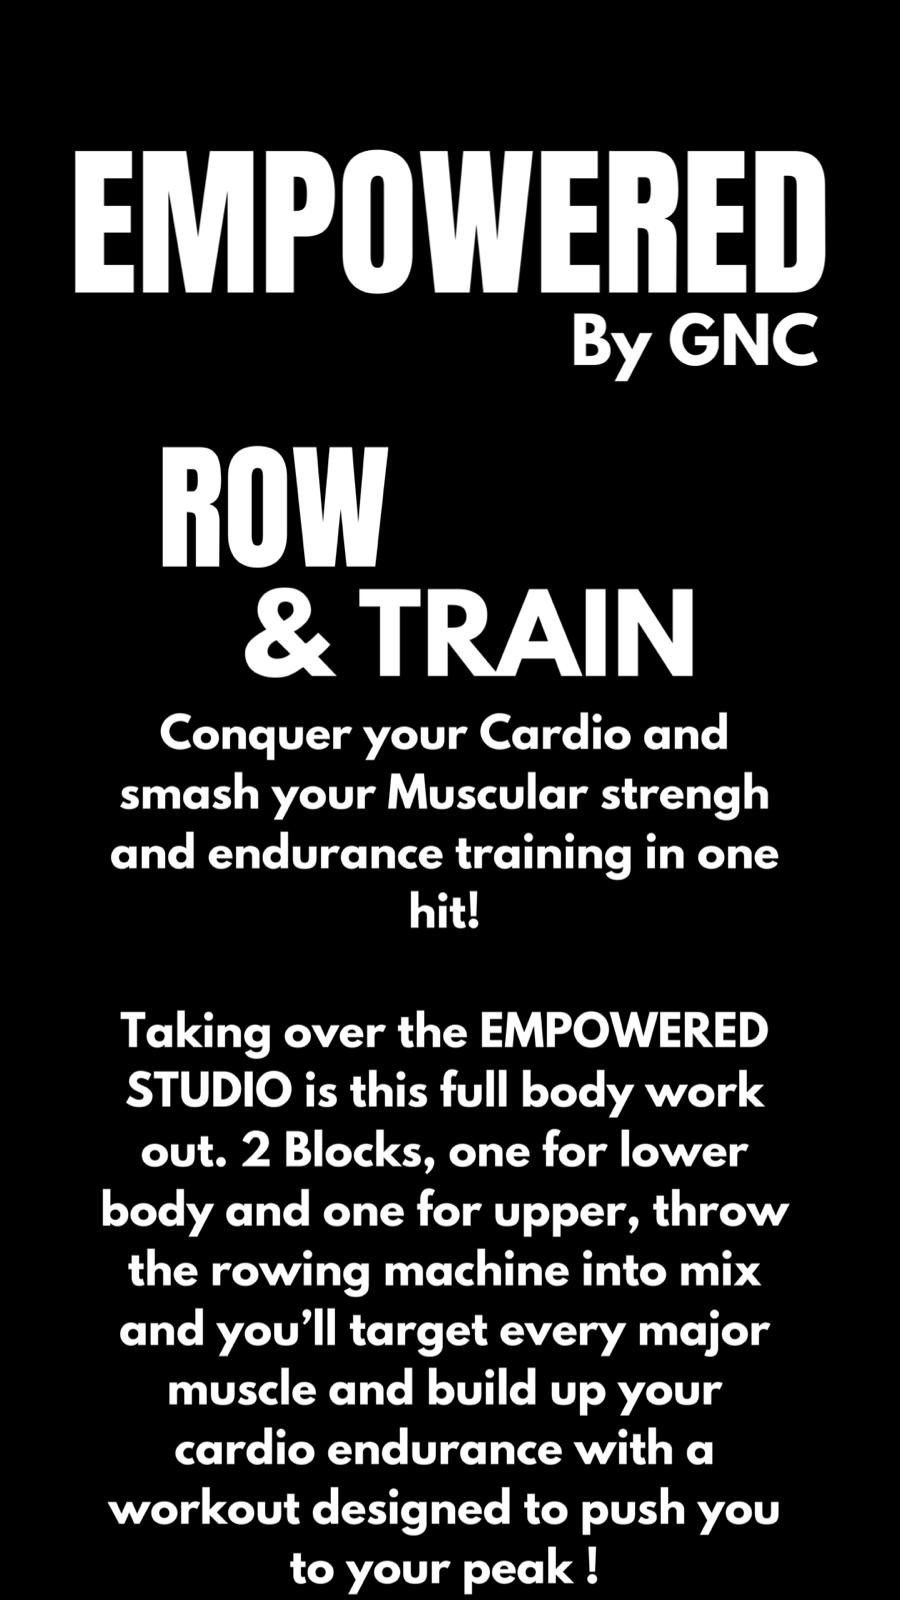 Empowered Row and Train by GNC